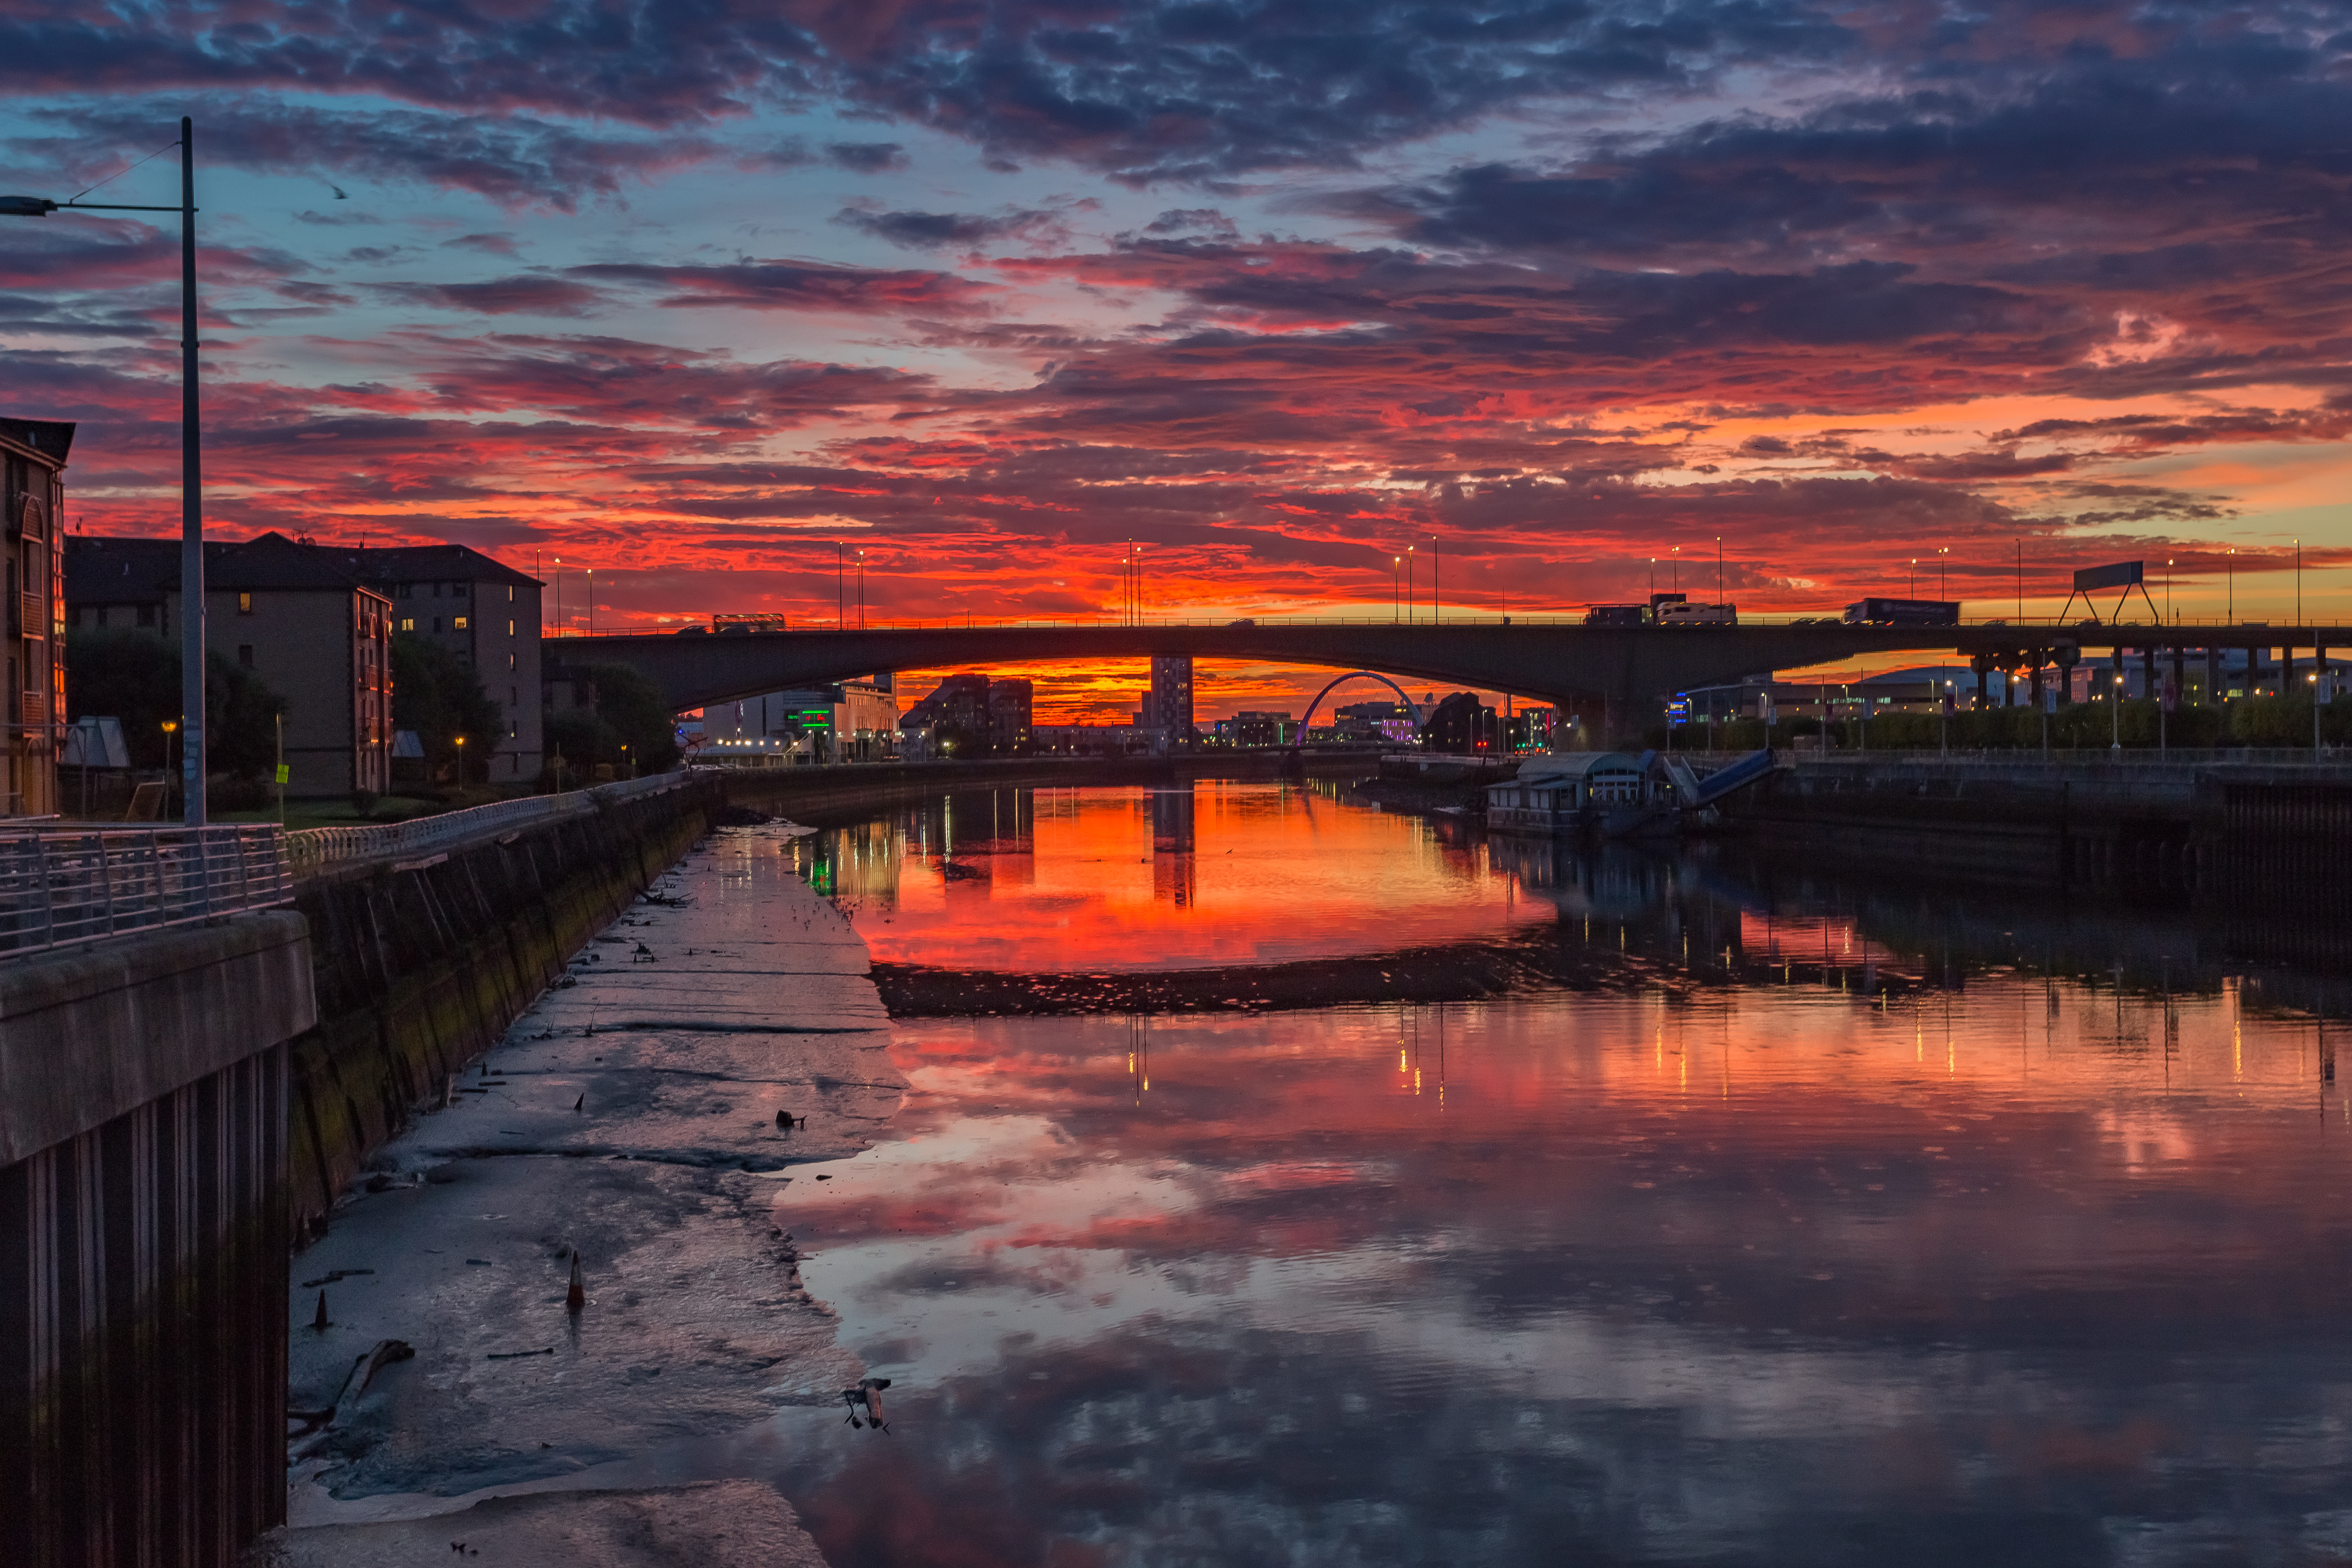 Sunset on the River Clyde  C6